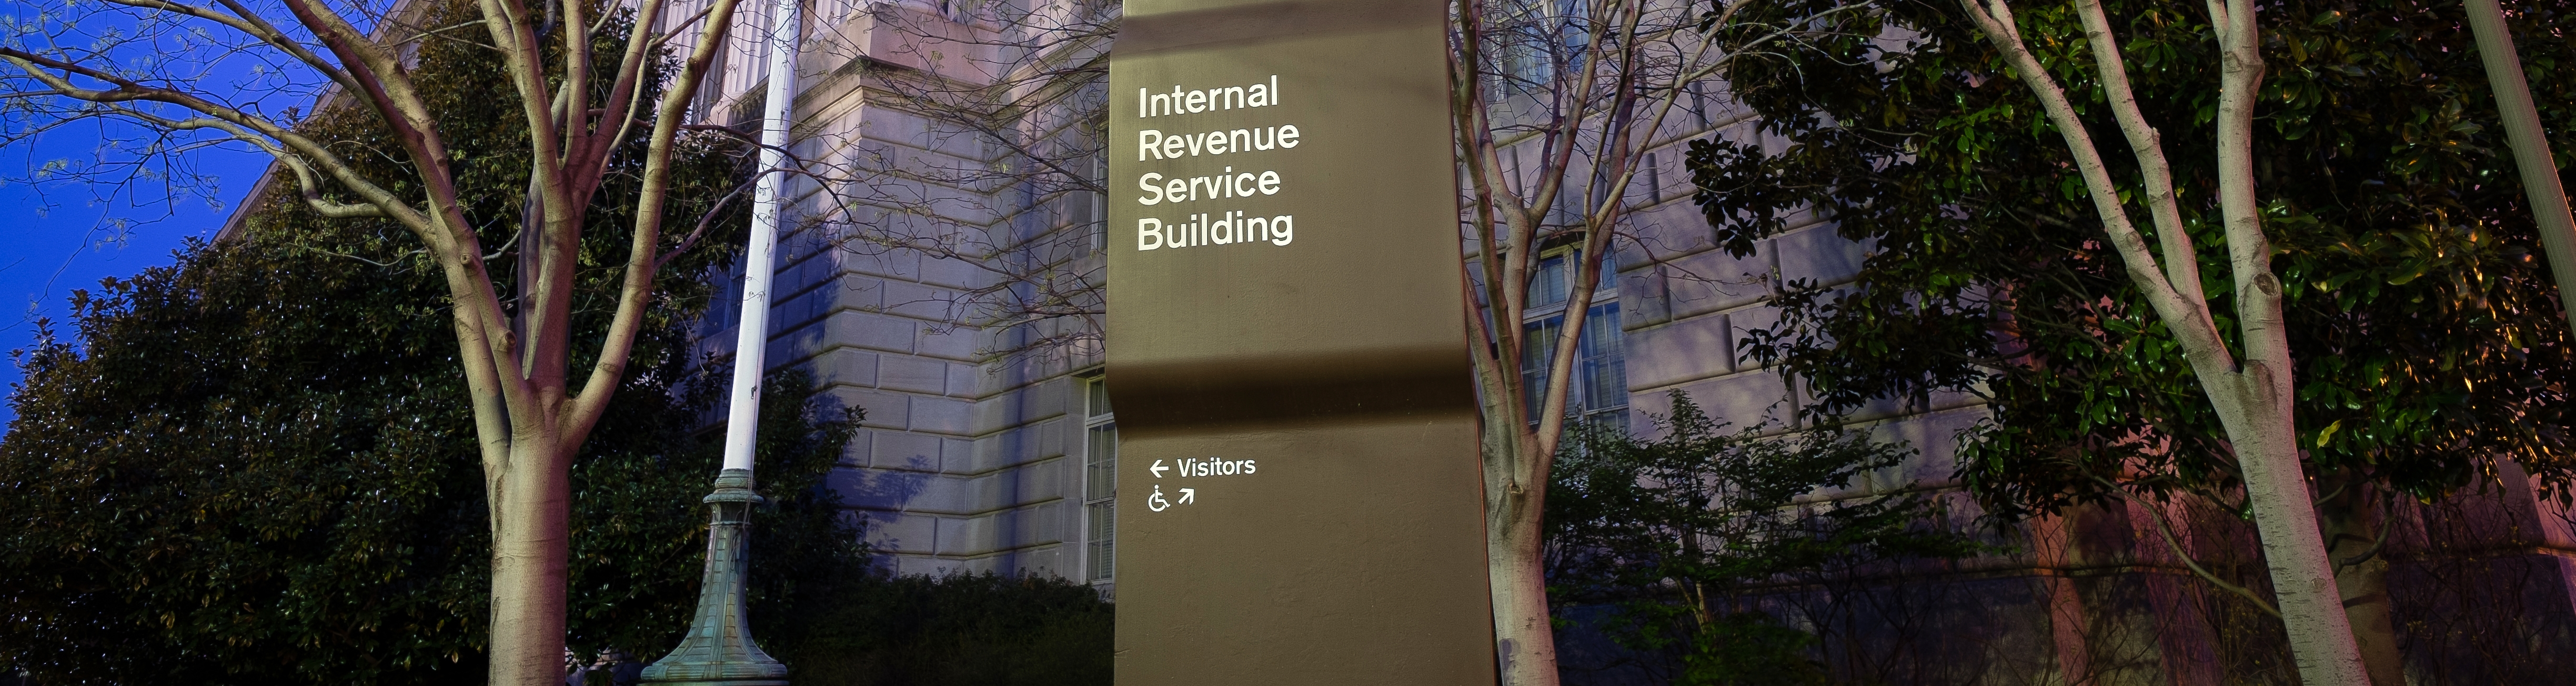 IRS_audit